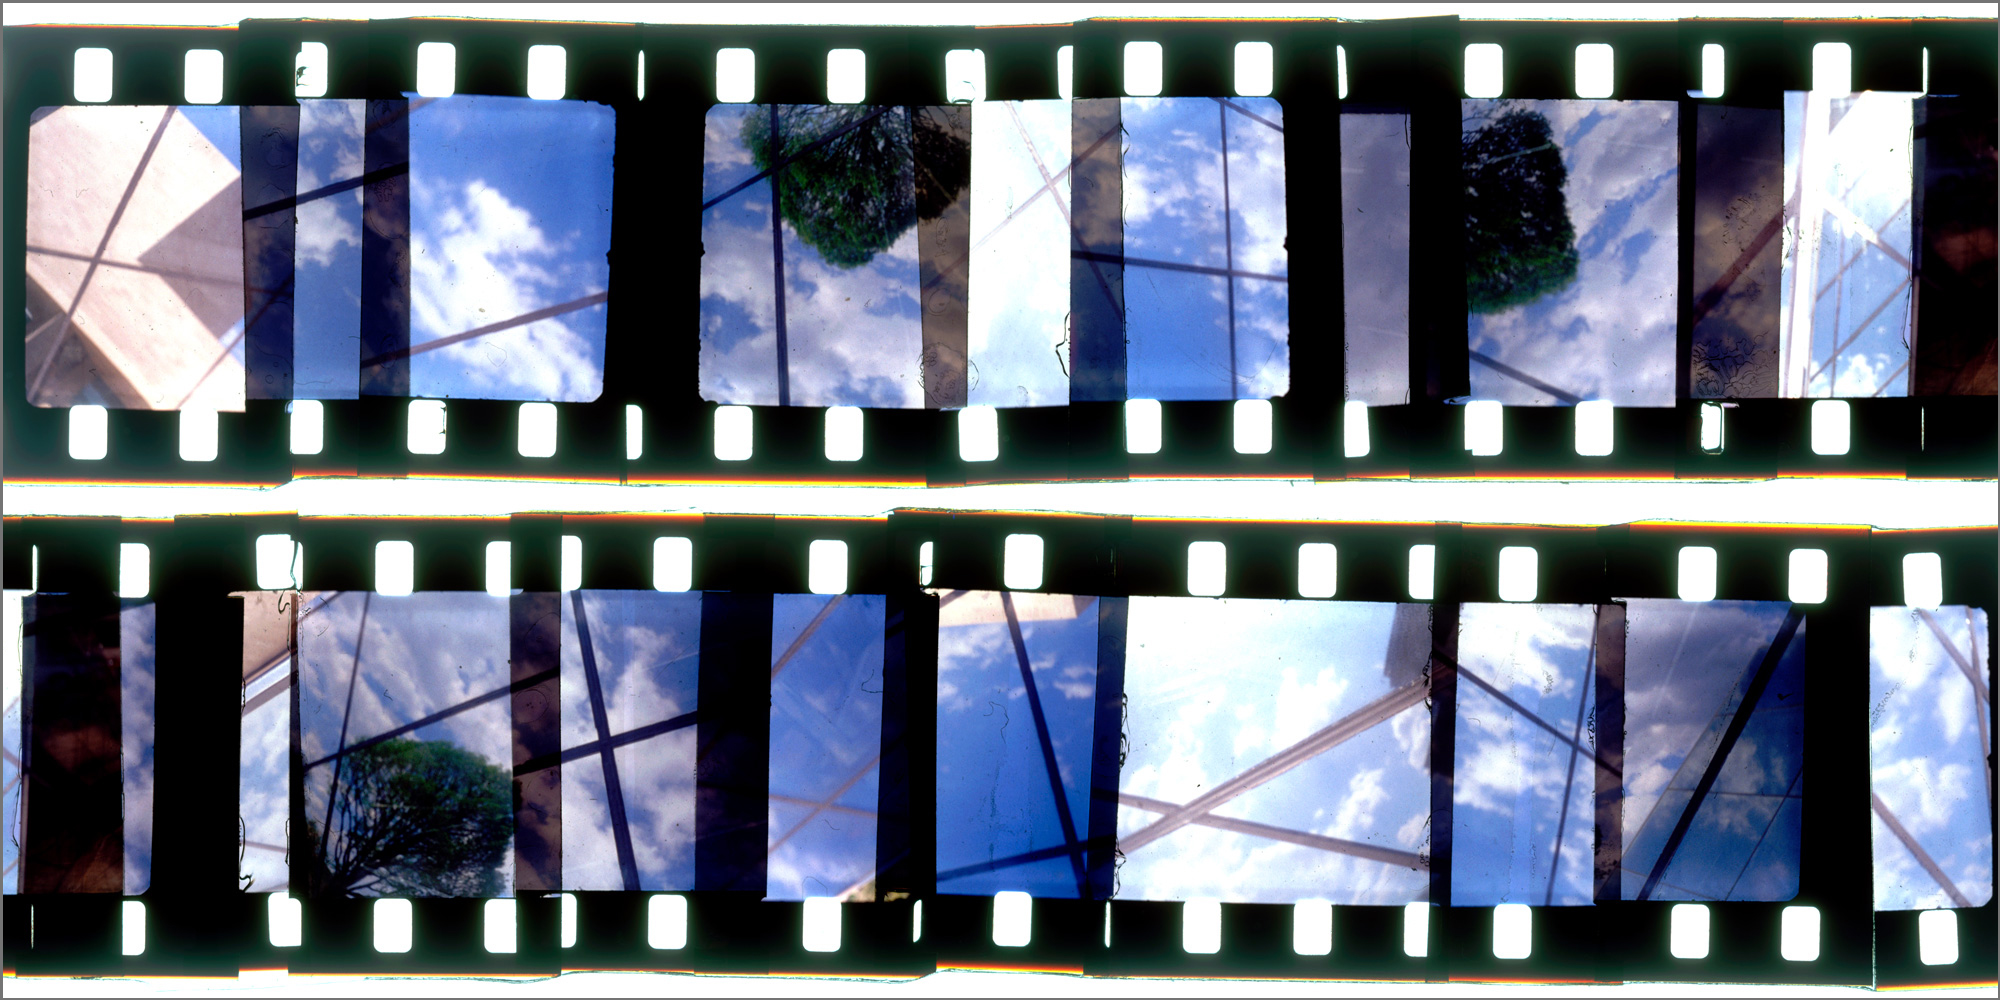 """WASHINGTON CUTUP 8,   ACRYLIC MOUNTED PRINT FROM 16MM TRANSPARENCY FILM COMPOSITION, 24"""" x 48"""", EDITION OF 5"""